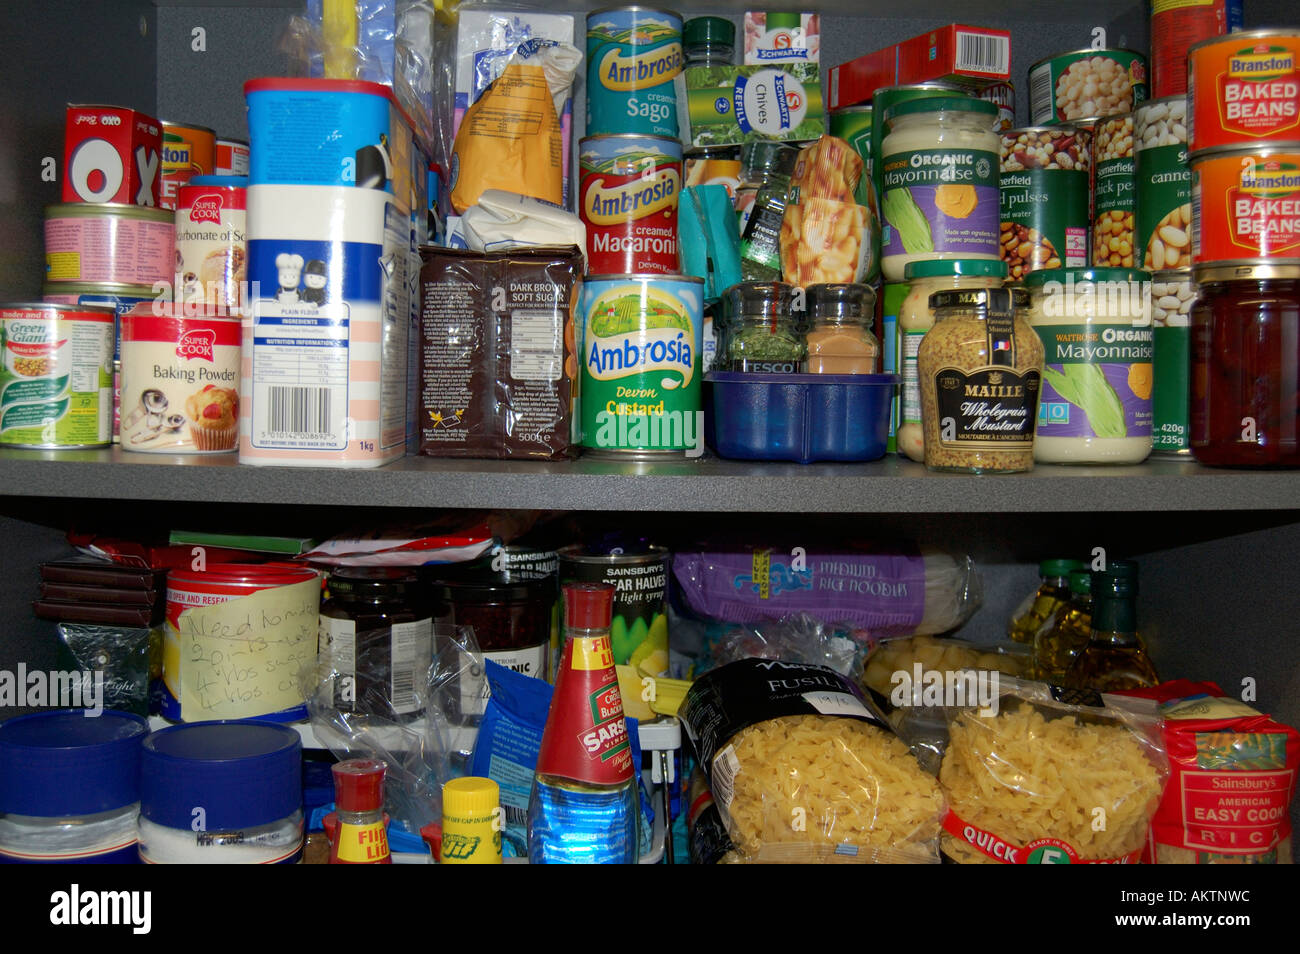 Shelves in a food cupboard full of groceries - Stock Image